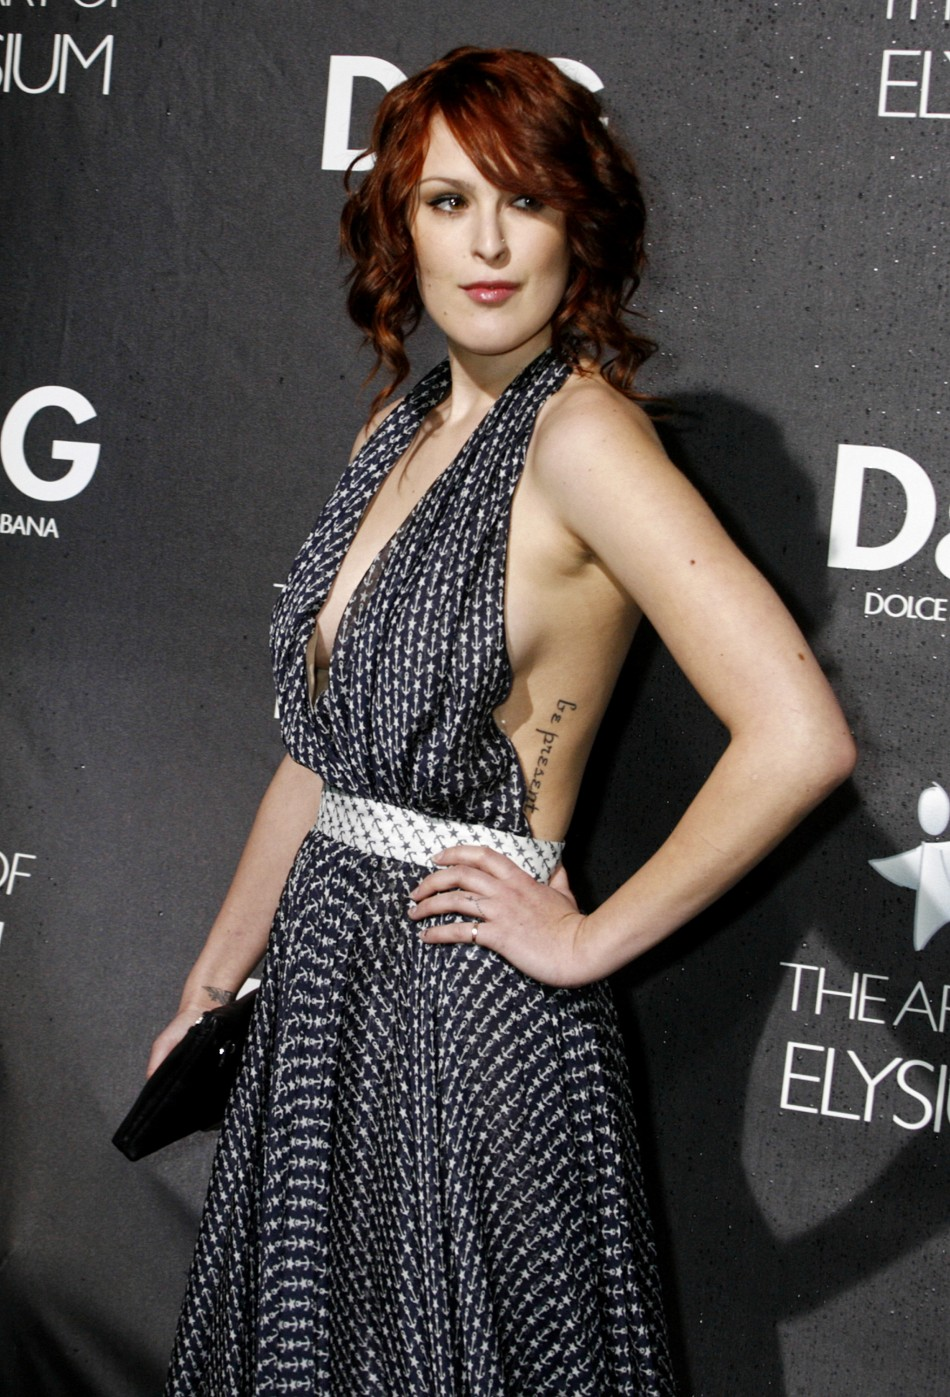 Actress Rumer Willis at the opening of the Dolce & Gabbana flagship boutique in Los Angeles